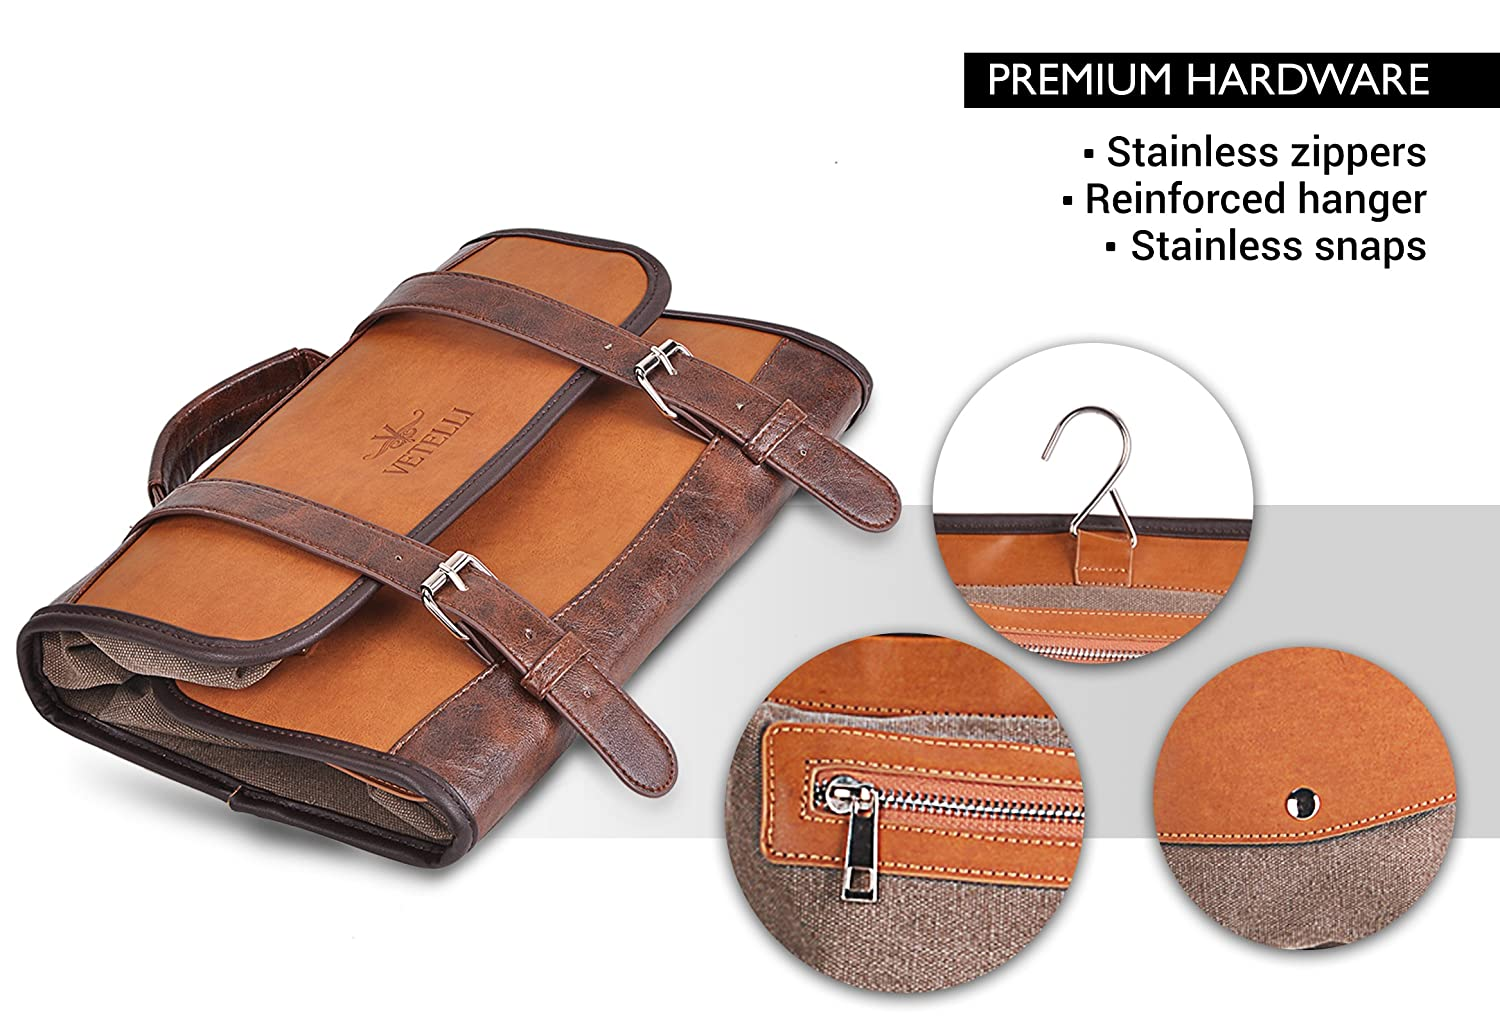 fedc4105b7 Amazon.com  Vetelli Hanging Toiletry Bag for Men - Dopp Kit Travel  Accessories Bag Great Gift  LSB-Products